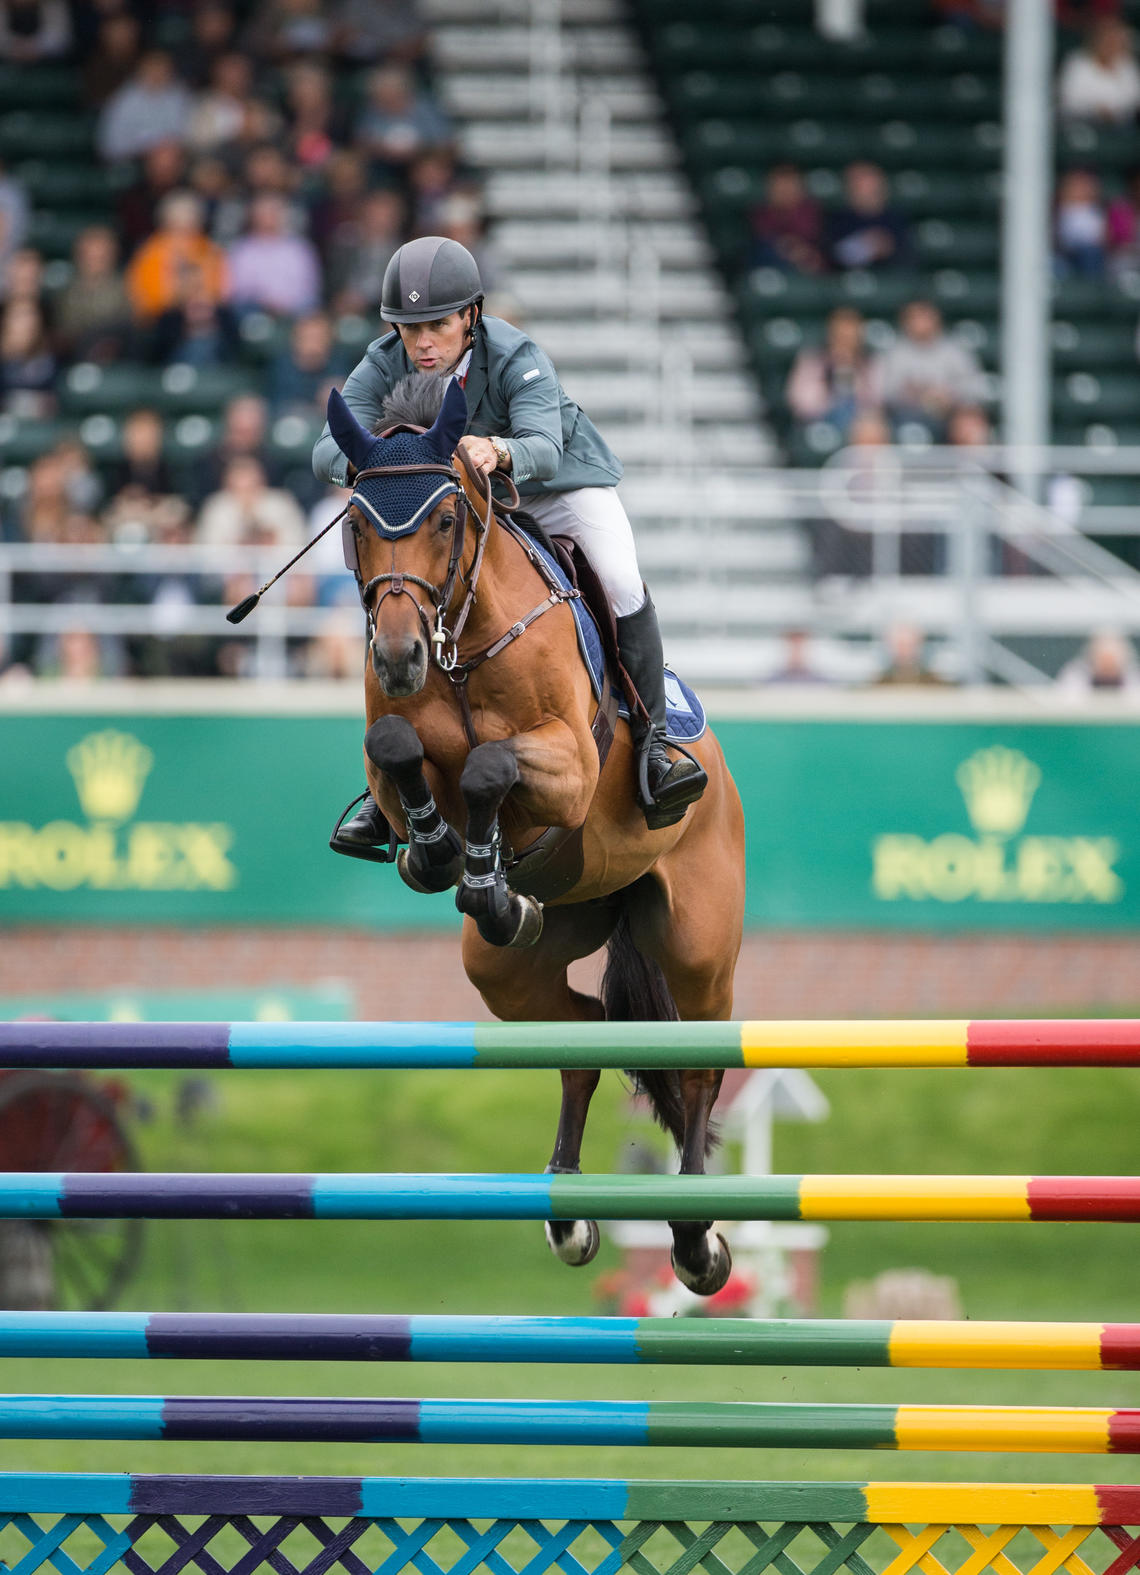 Horse jumping over a competition fence